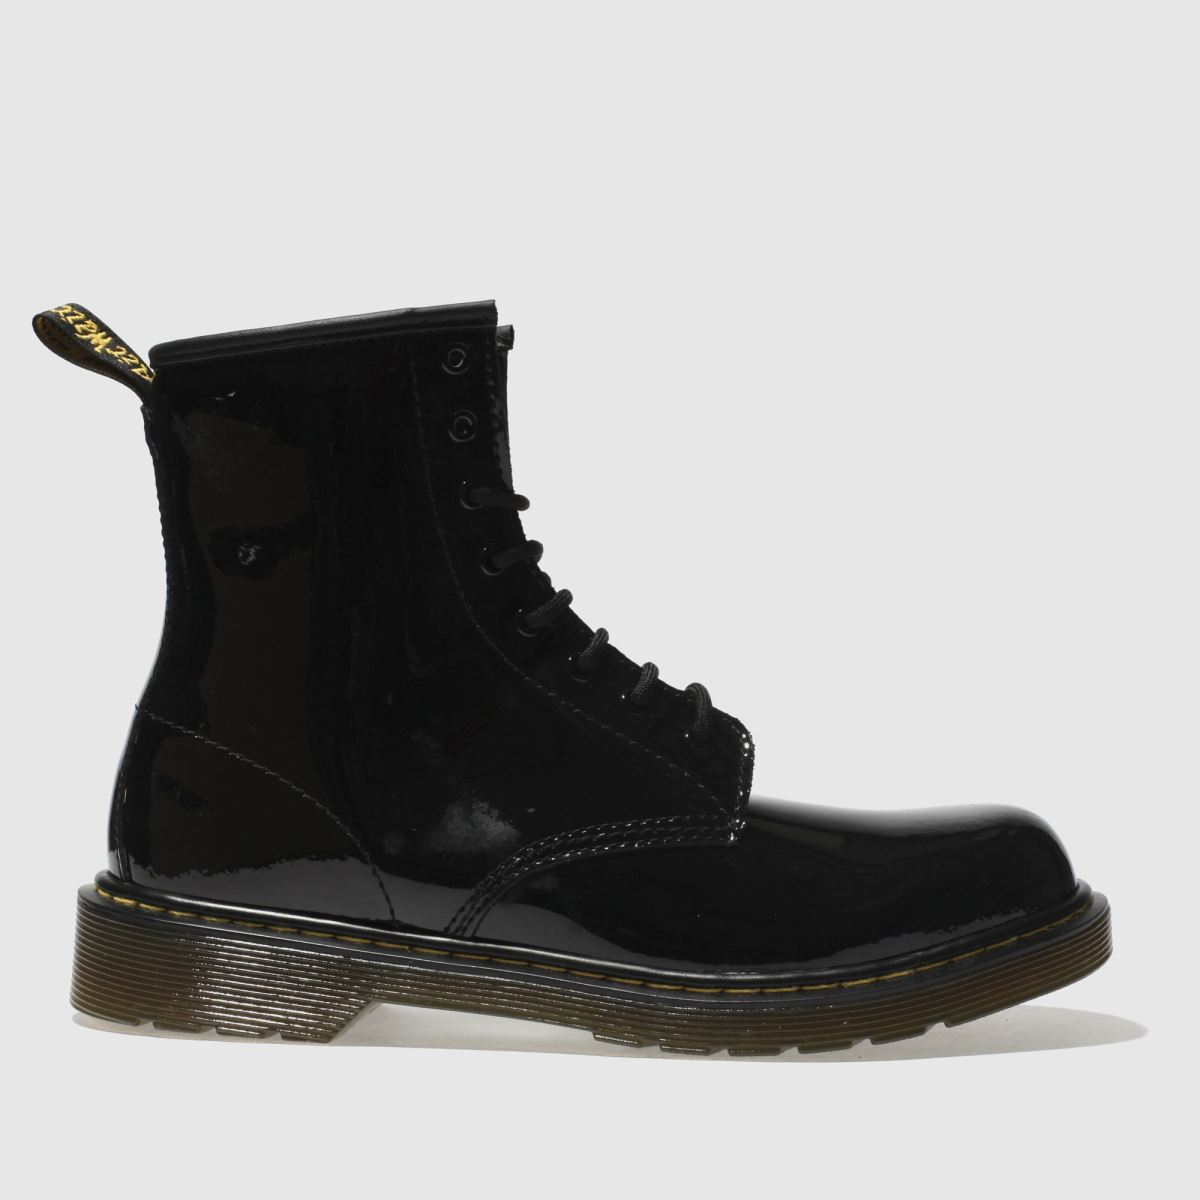 Dr Martens Black 1460 Boots Youth